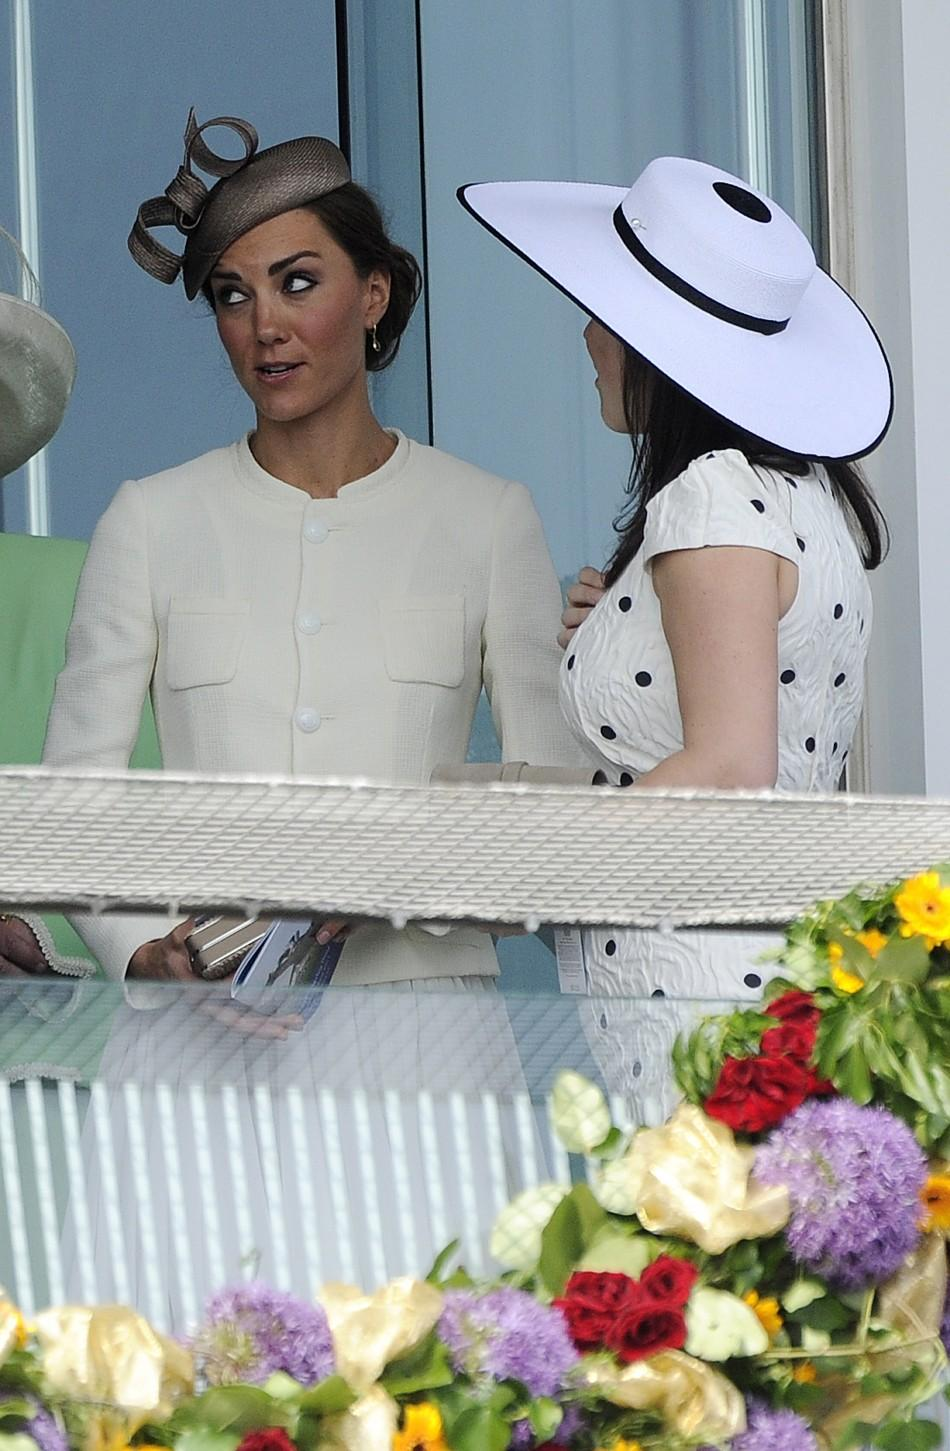 Catherine, Britains Duchess of Cambridge, stands with Britain's Princess Eugenie as they attend Epsom Derby horse race at Epsom Racecourse in southern England